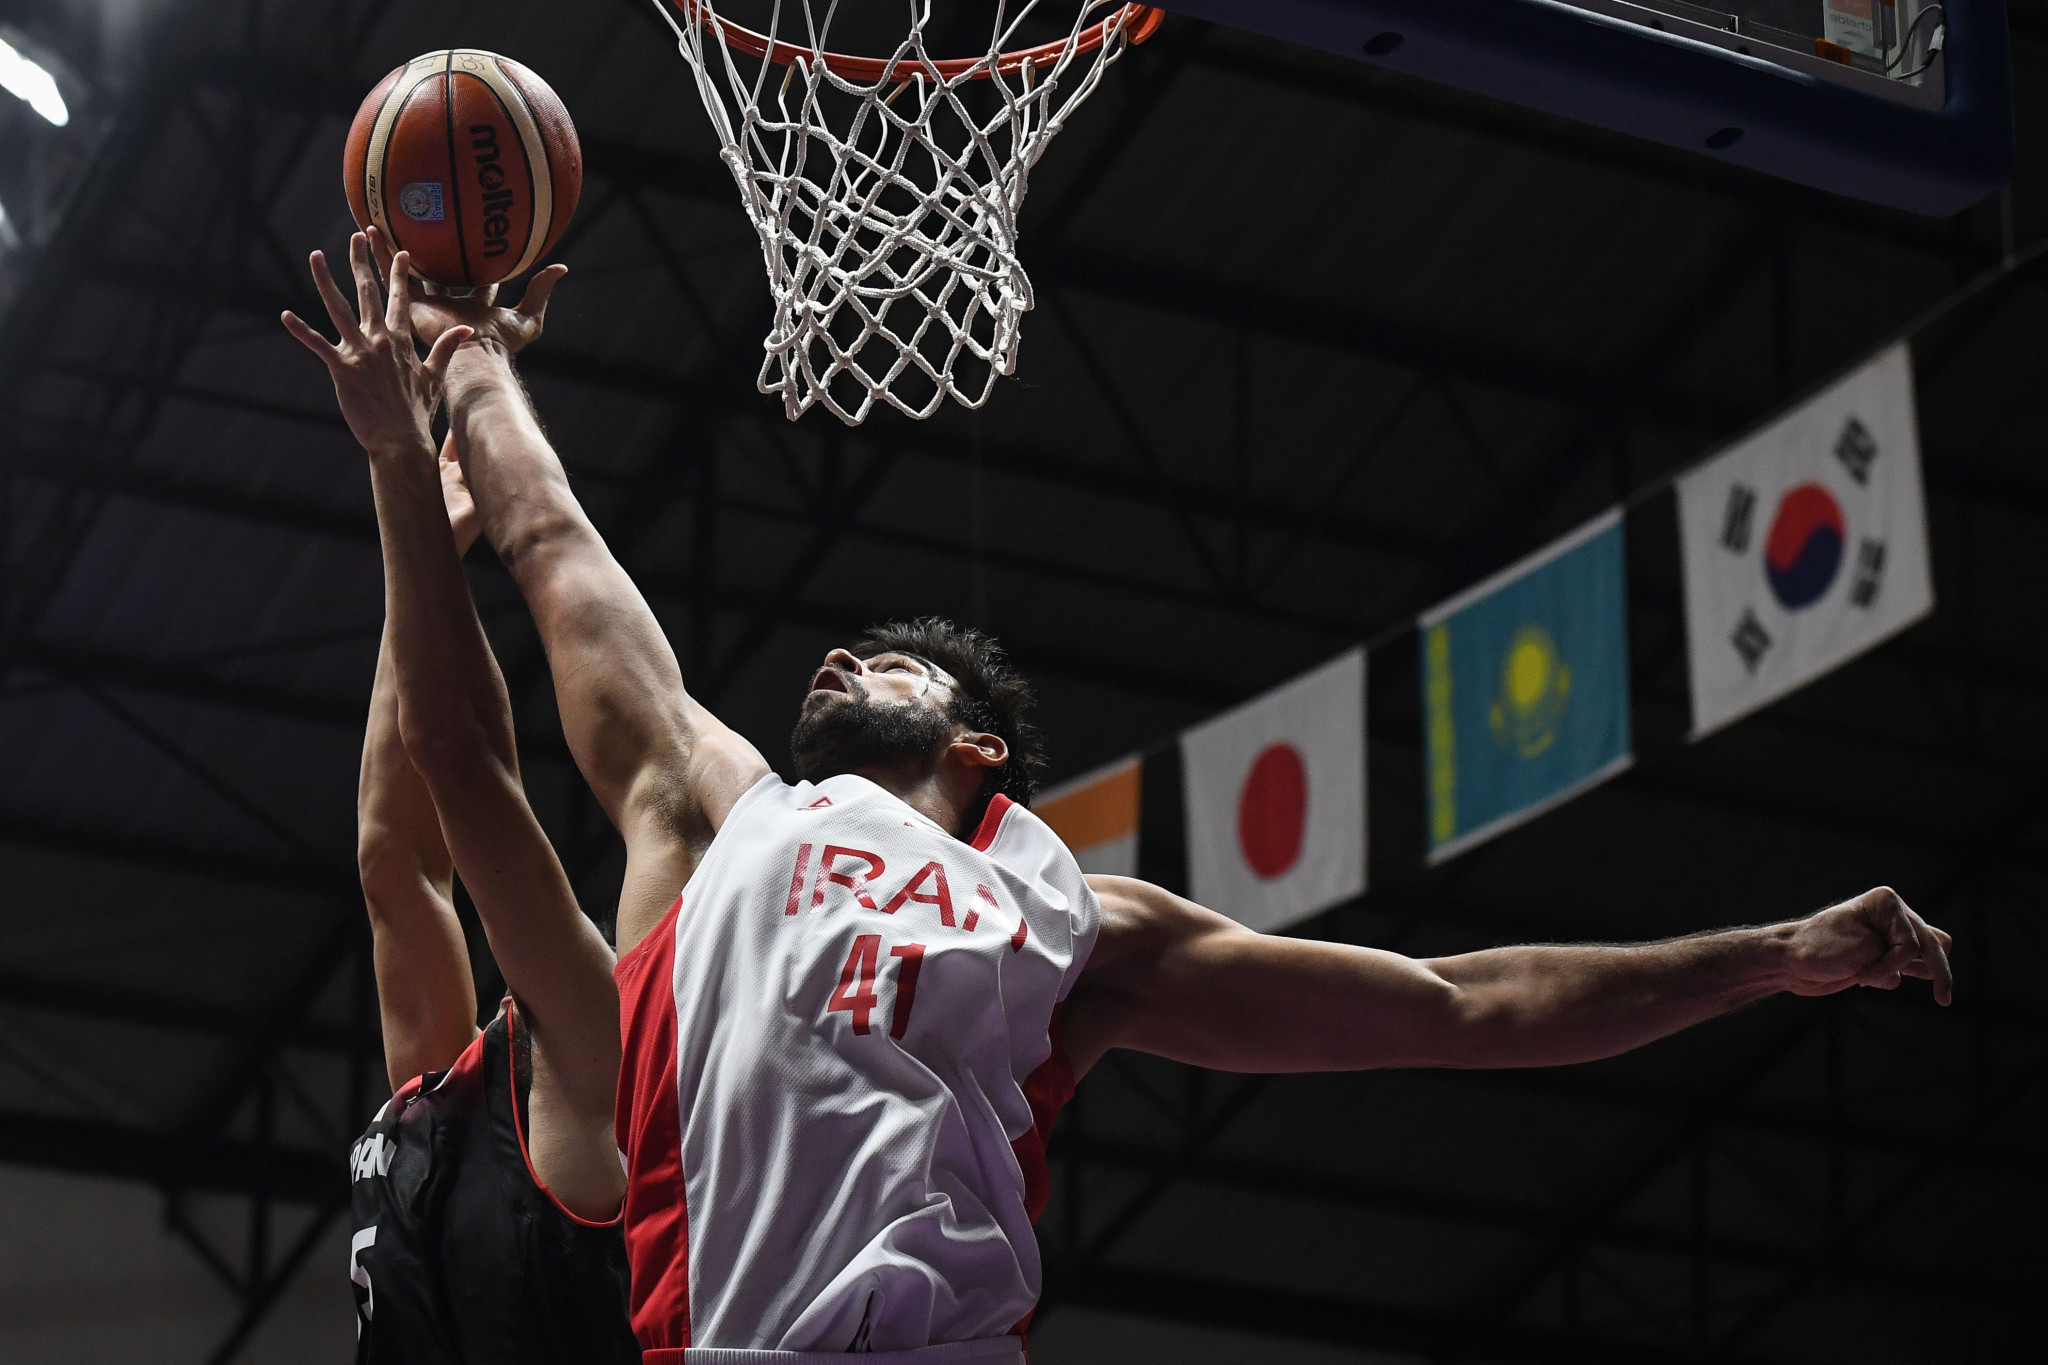 Iran basketball star Kazemi wins FIBA Dunk of the Decade tournament